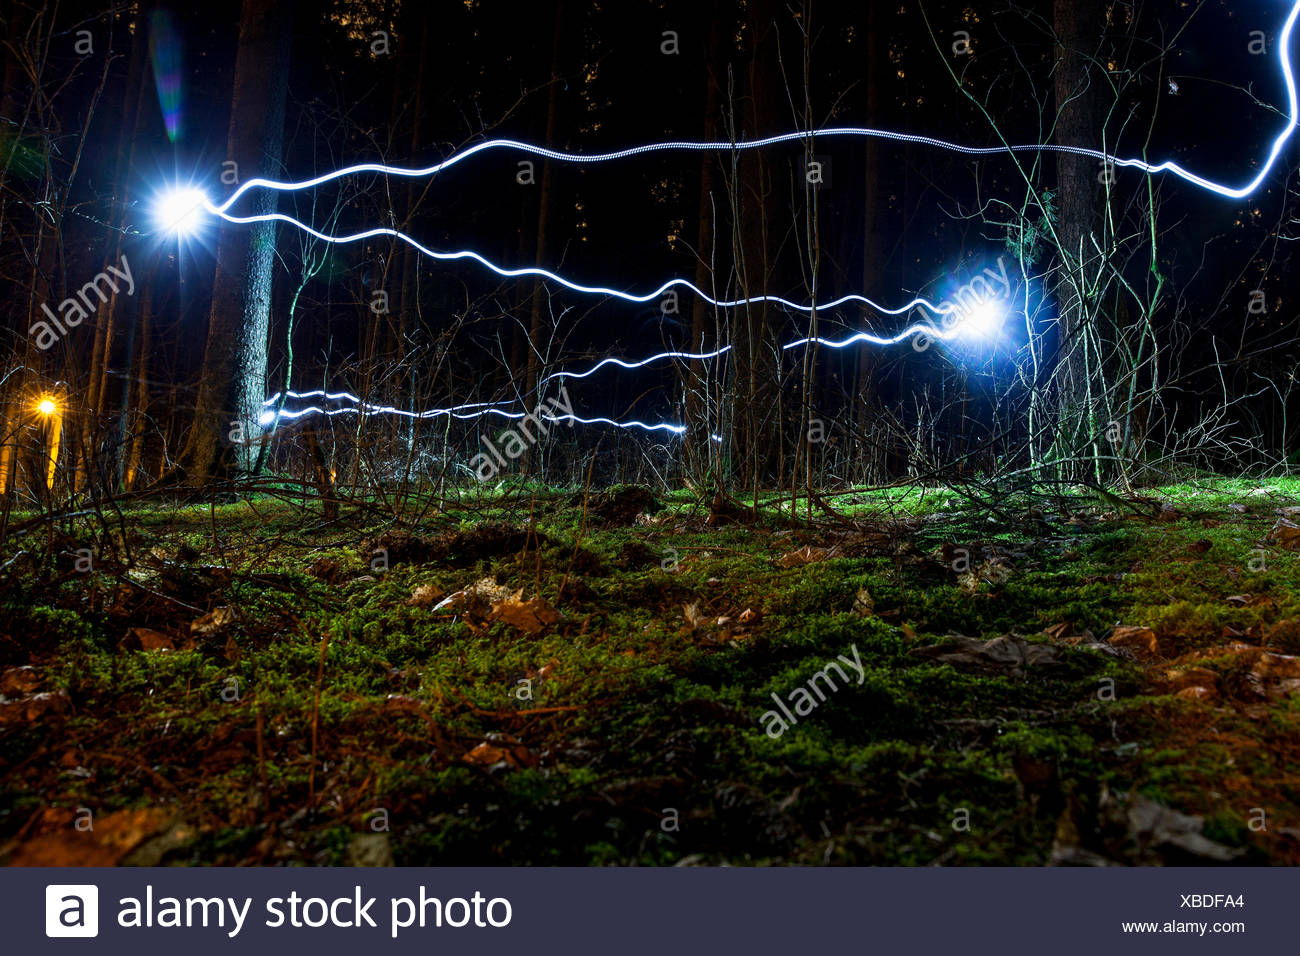 Blue light trails in forest Photo Stock